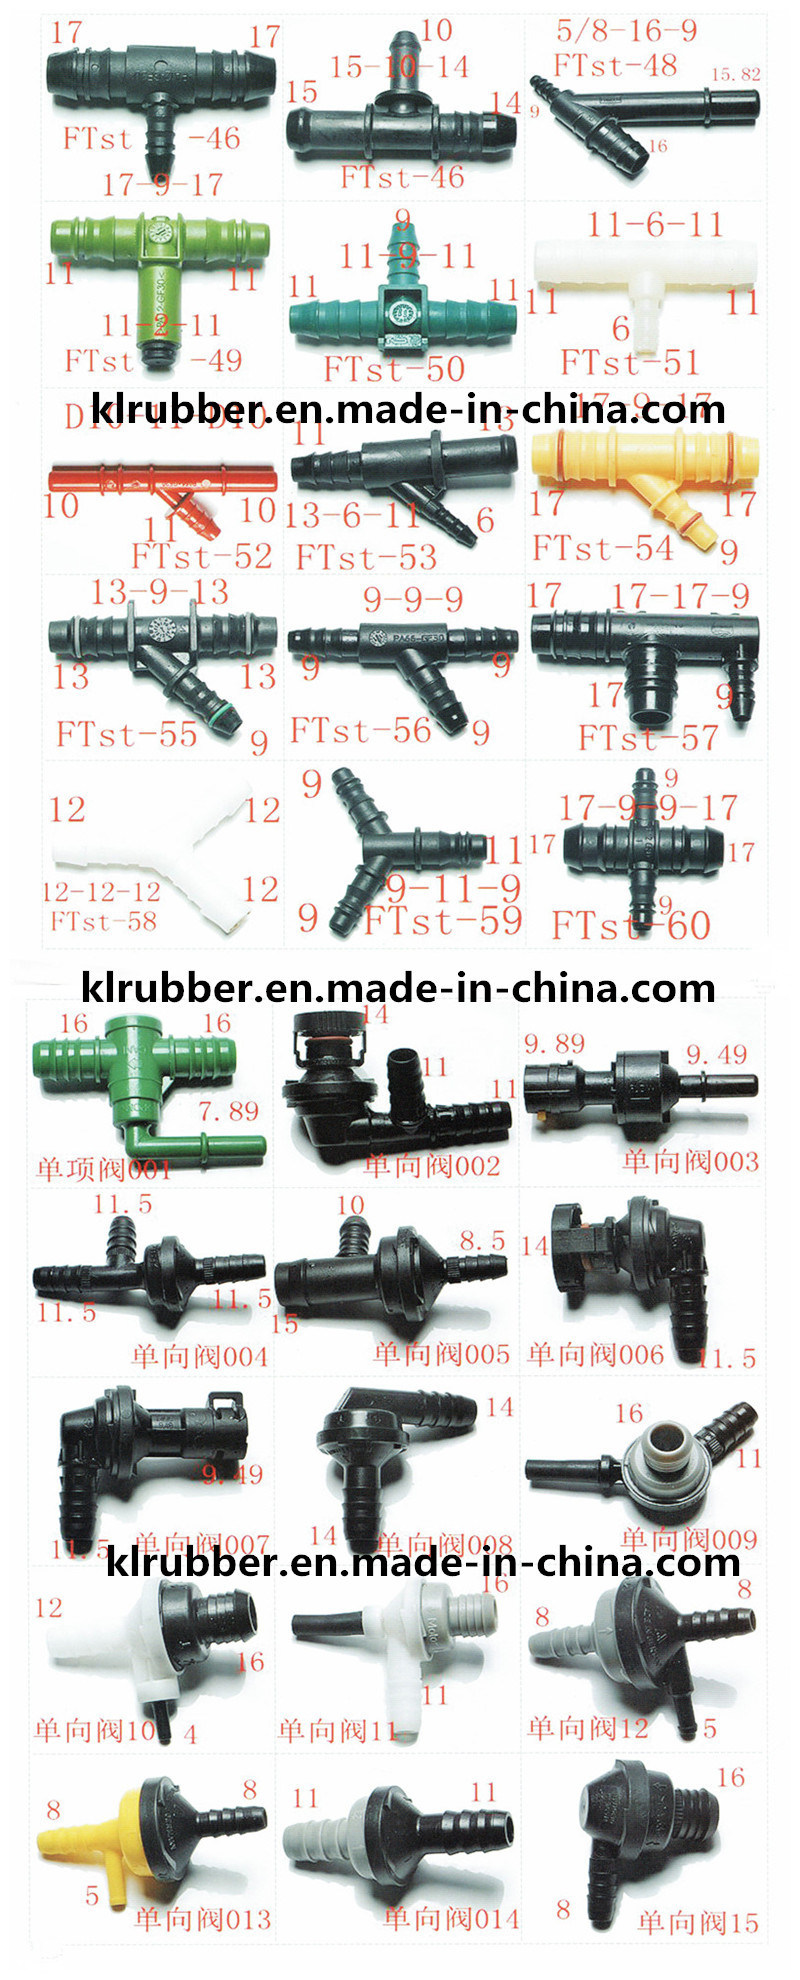 Low Pressure Auto SAE17.50 Fuel Line Fittings for Great Wall Cars